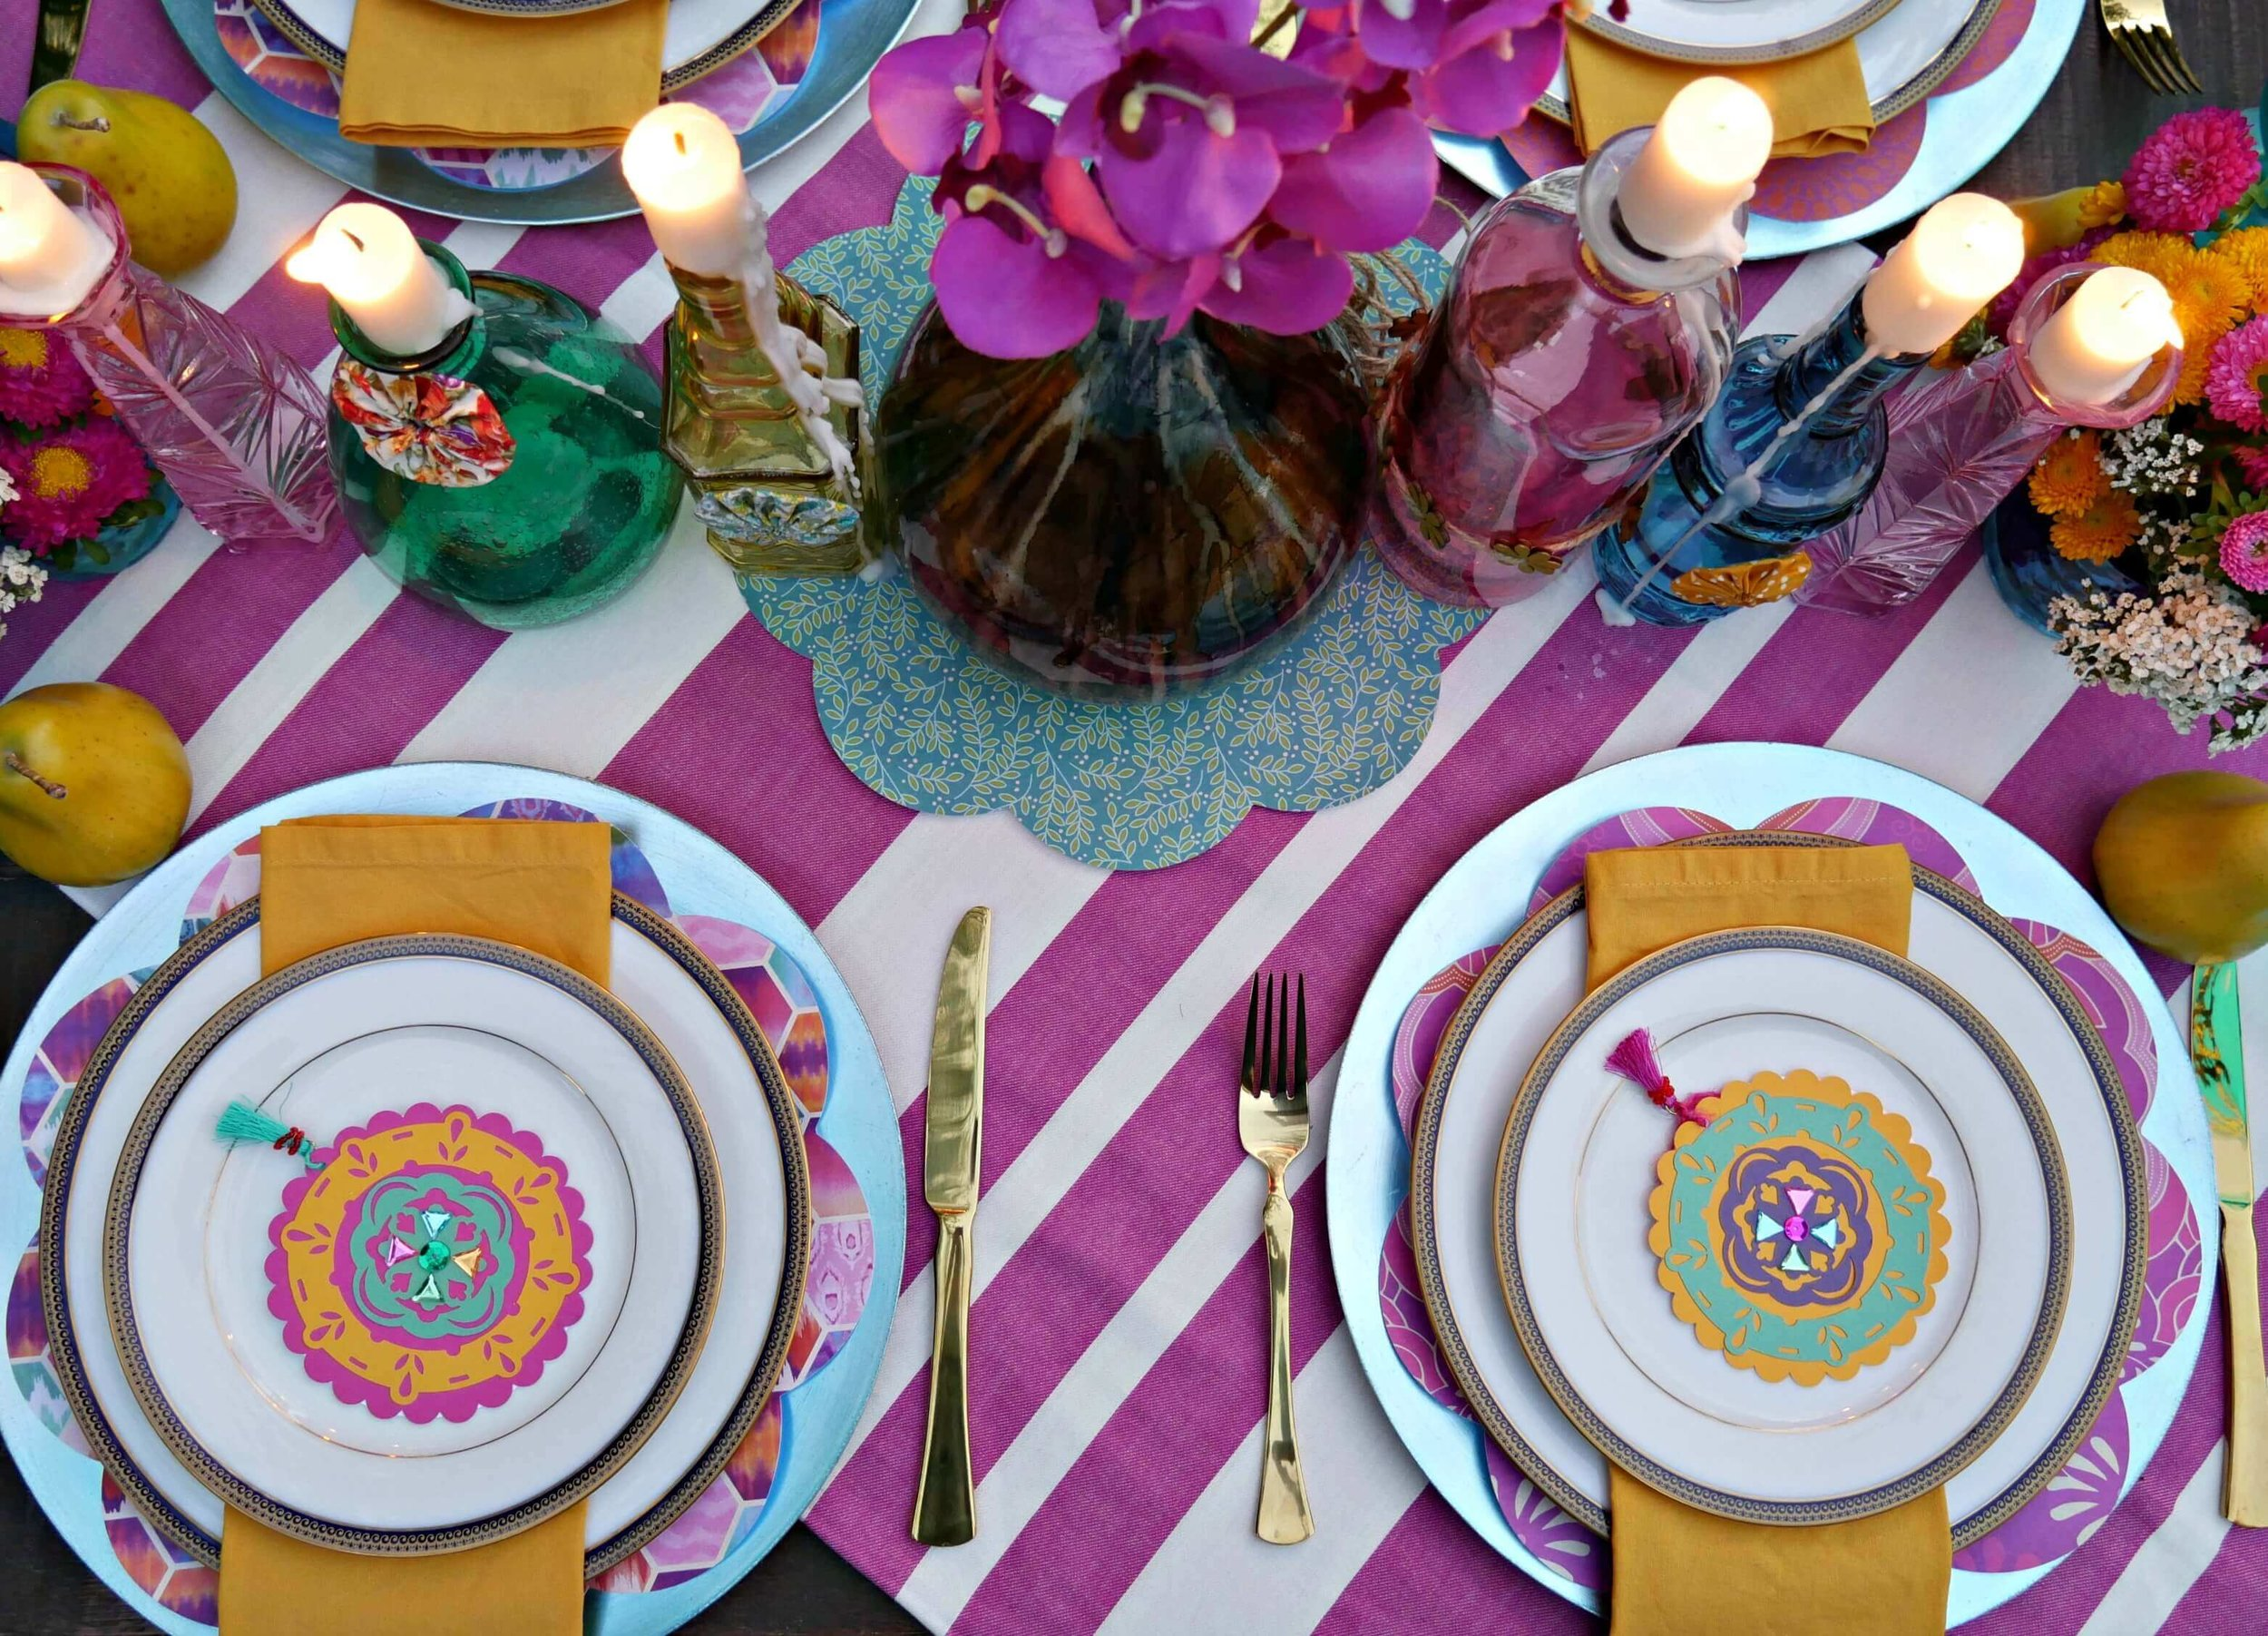 Be inspired with these Gypsy Party Ideas for an engagement party or any life celebration. Styled by Mint Event Design in Austin Texas www.minteventdesign.com #engagementideas #tablesetting #tablescapes #bohochic